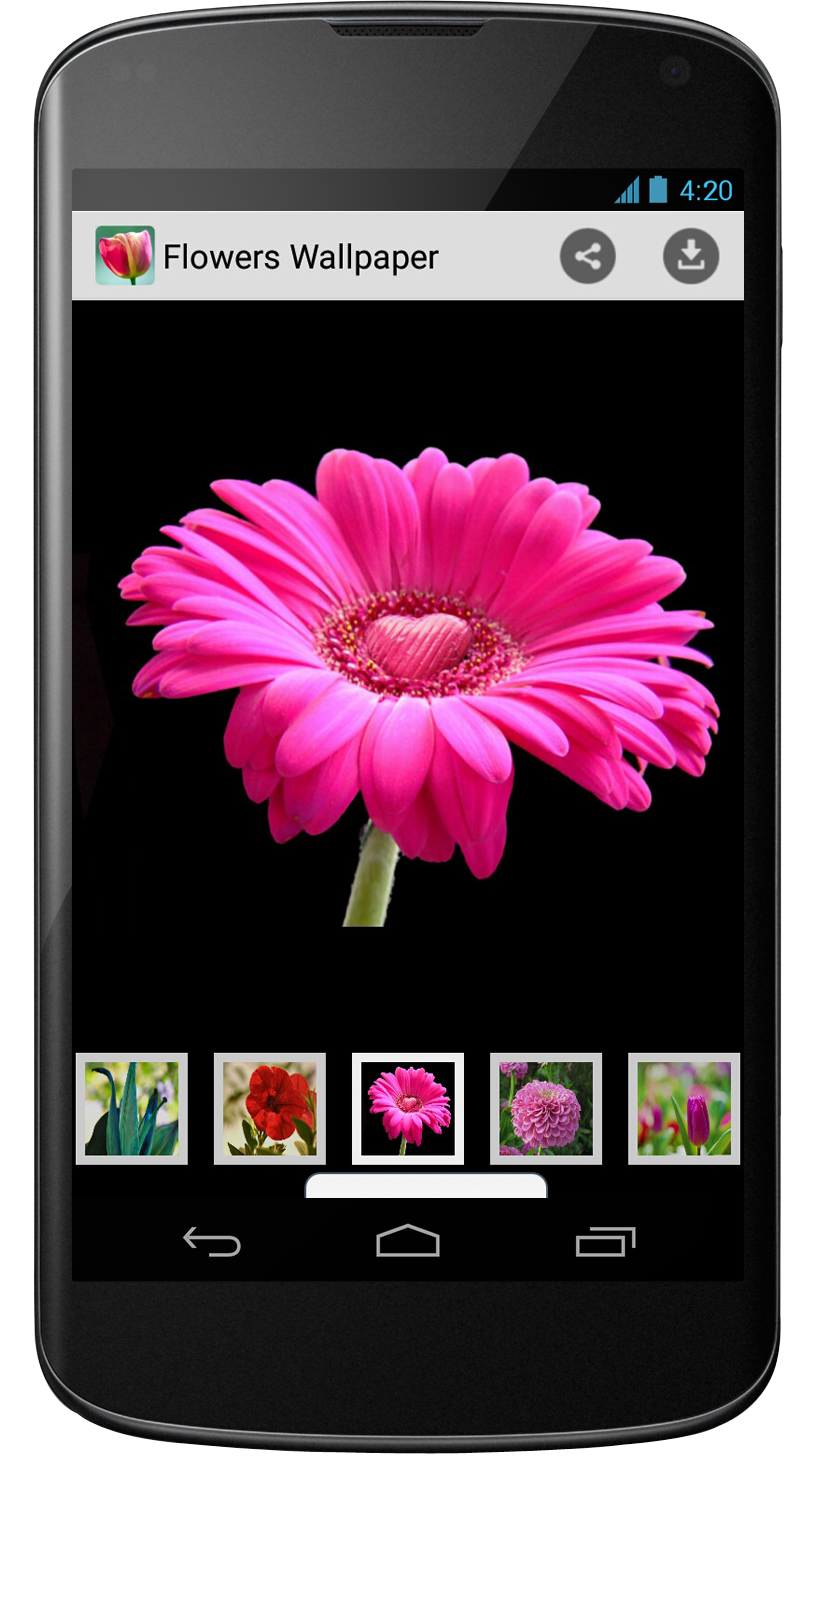 Wallpaper App For Android Mobile App Development Android App